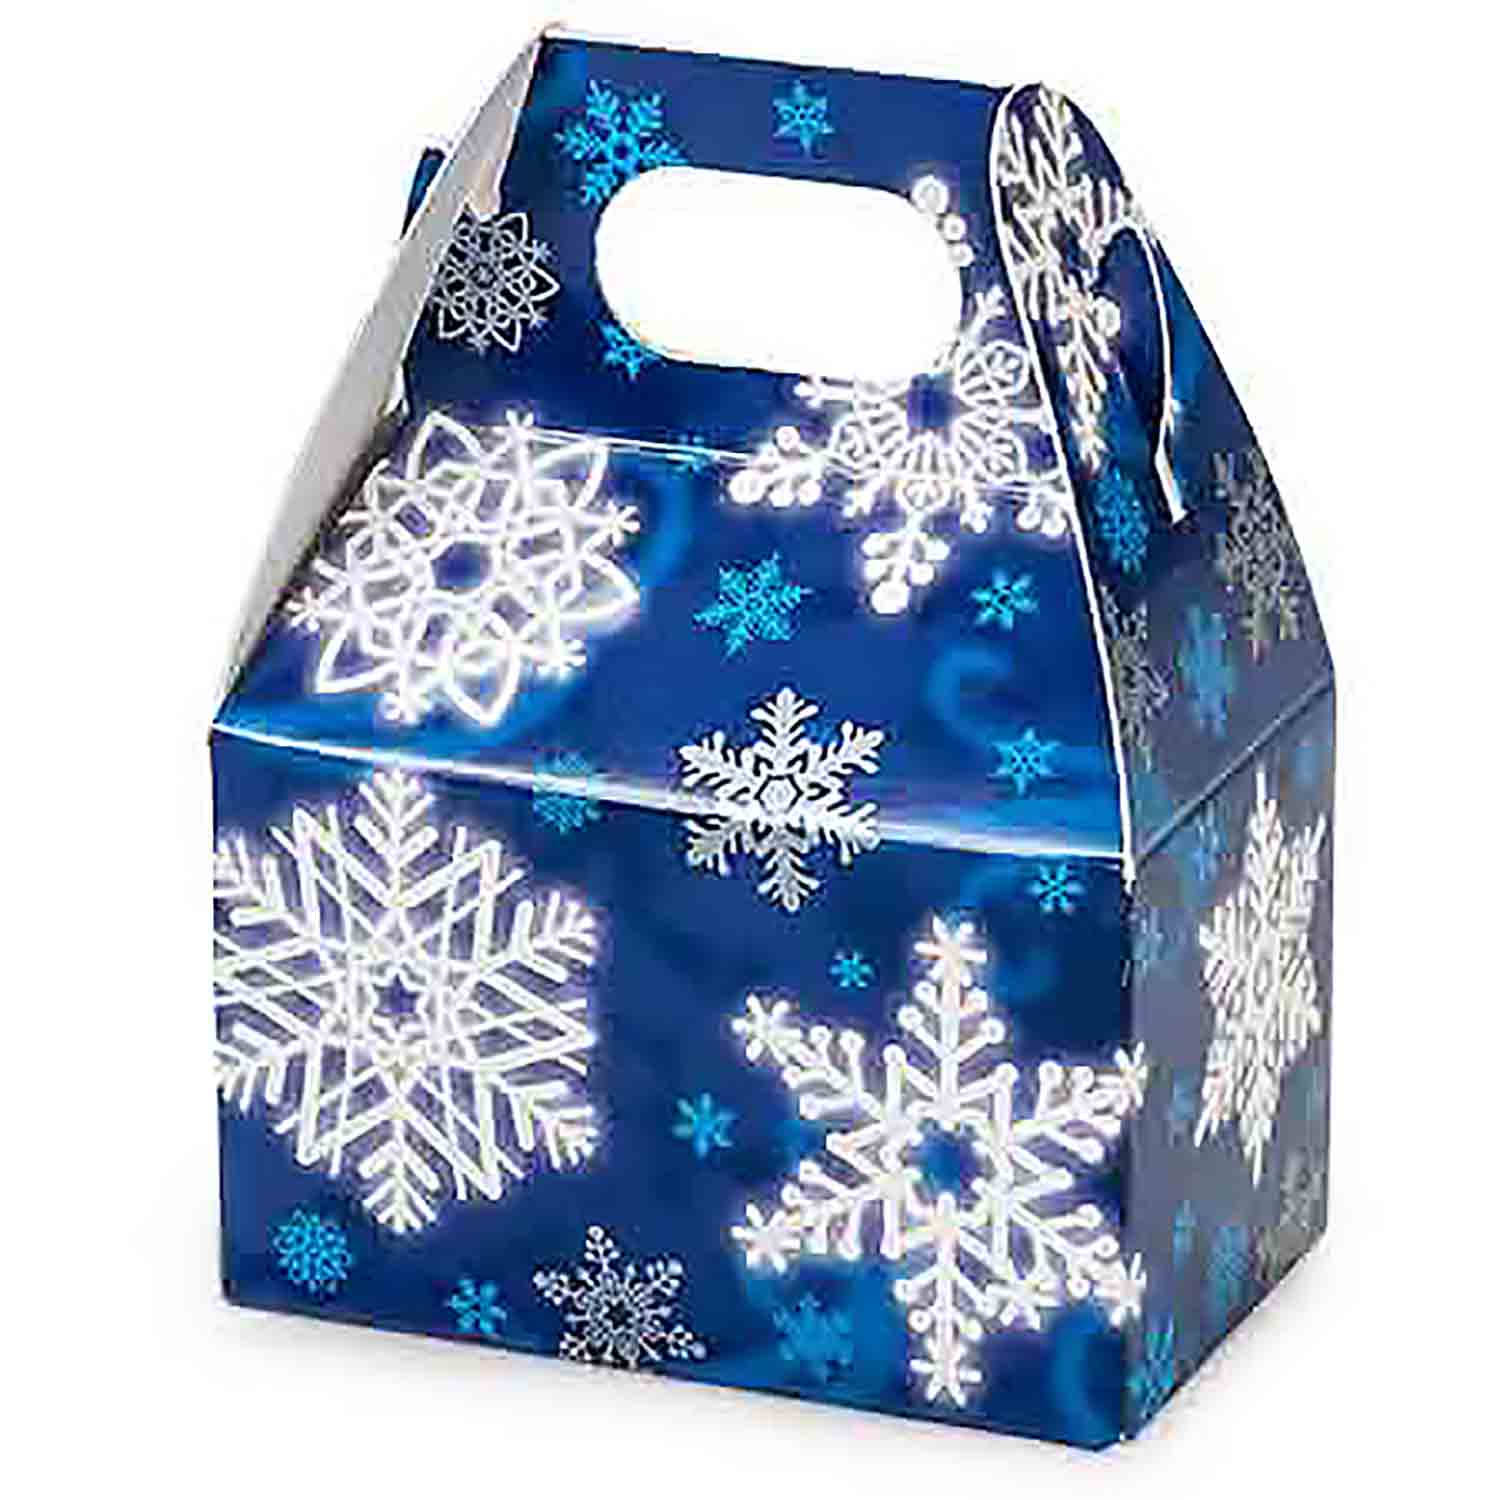 1/2 lb. Blue Snowflake Mini Gable Box